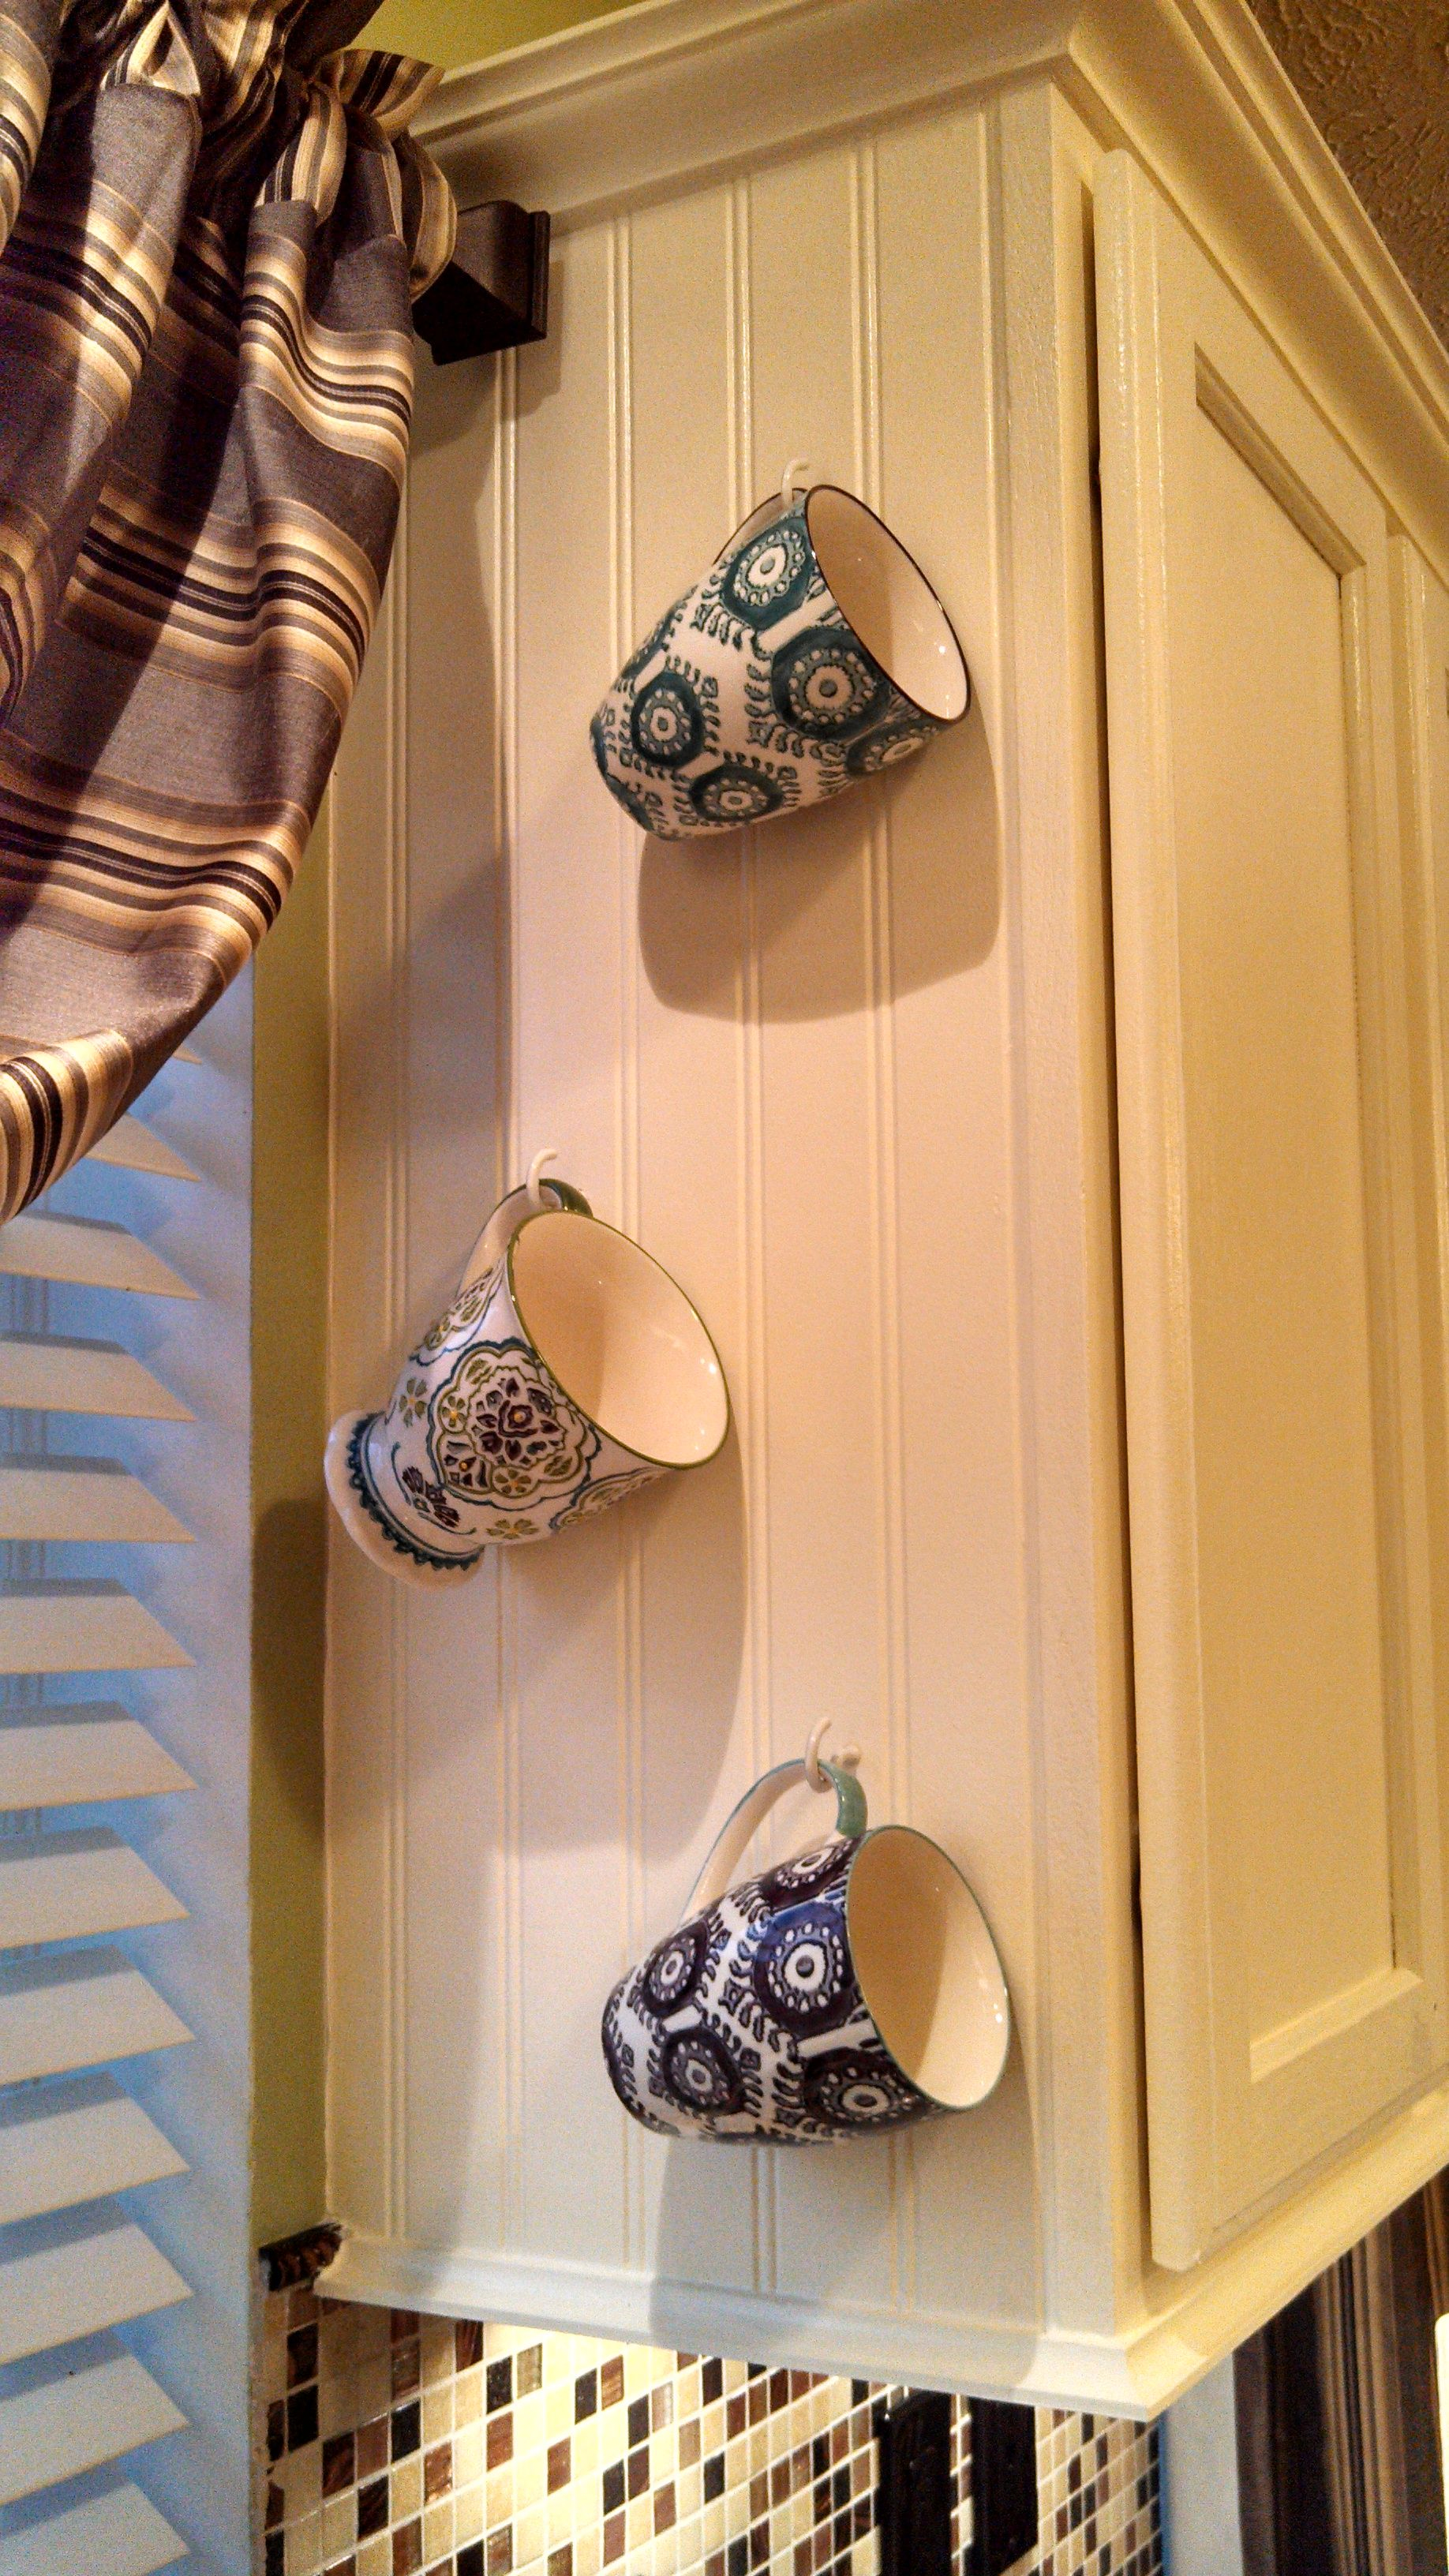 Decorative coffee mugs dress up the sides of kitchen cabinets and ...